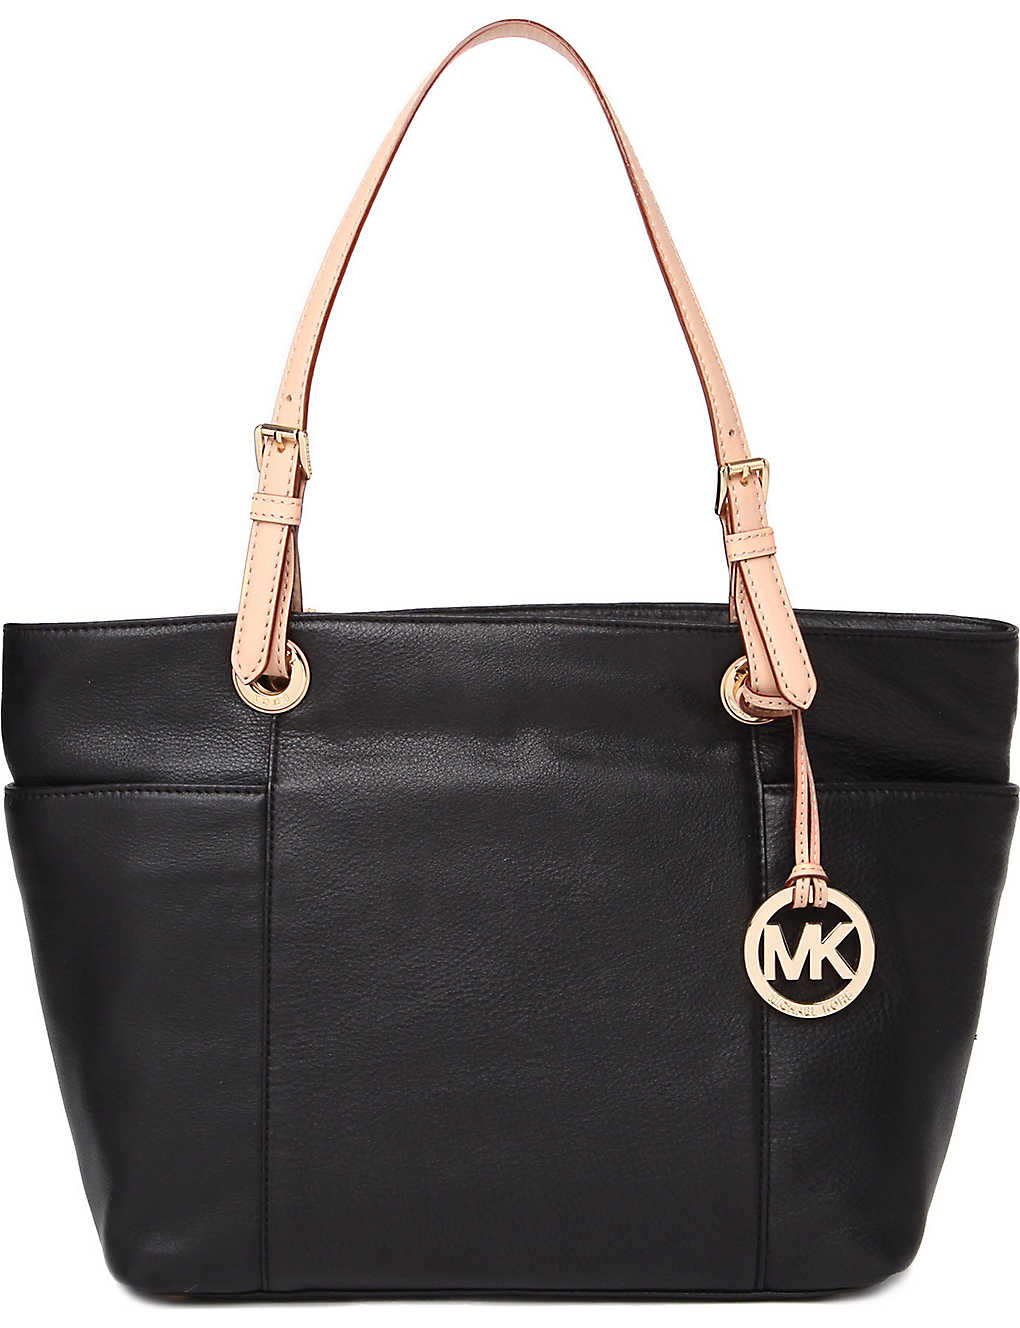 e0089f60d516b8 MICHAEL MICHAEL KORS - Jet Set top zip tote | Selfridges.com